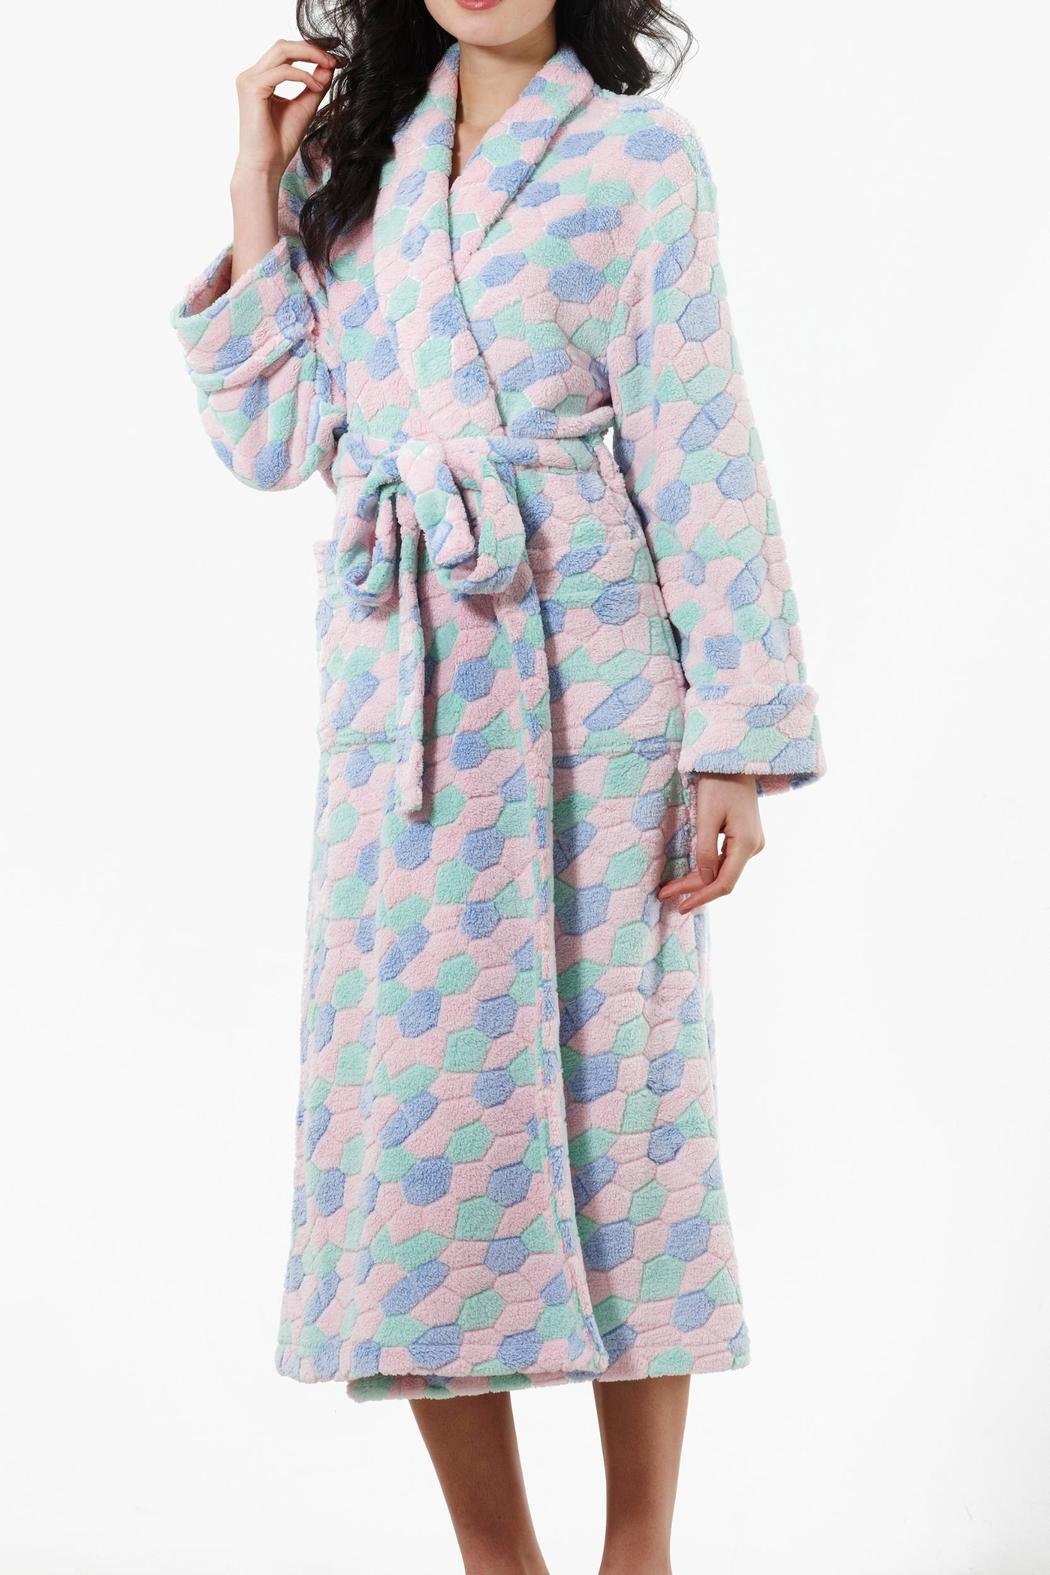 Pierre Cardin Fleece Shawl Robe - Main Image